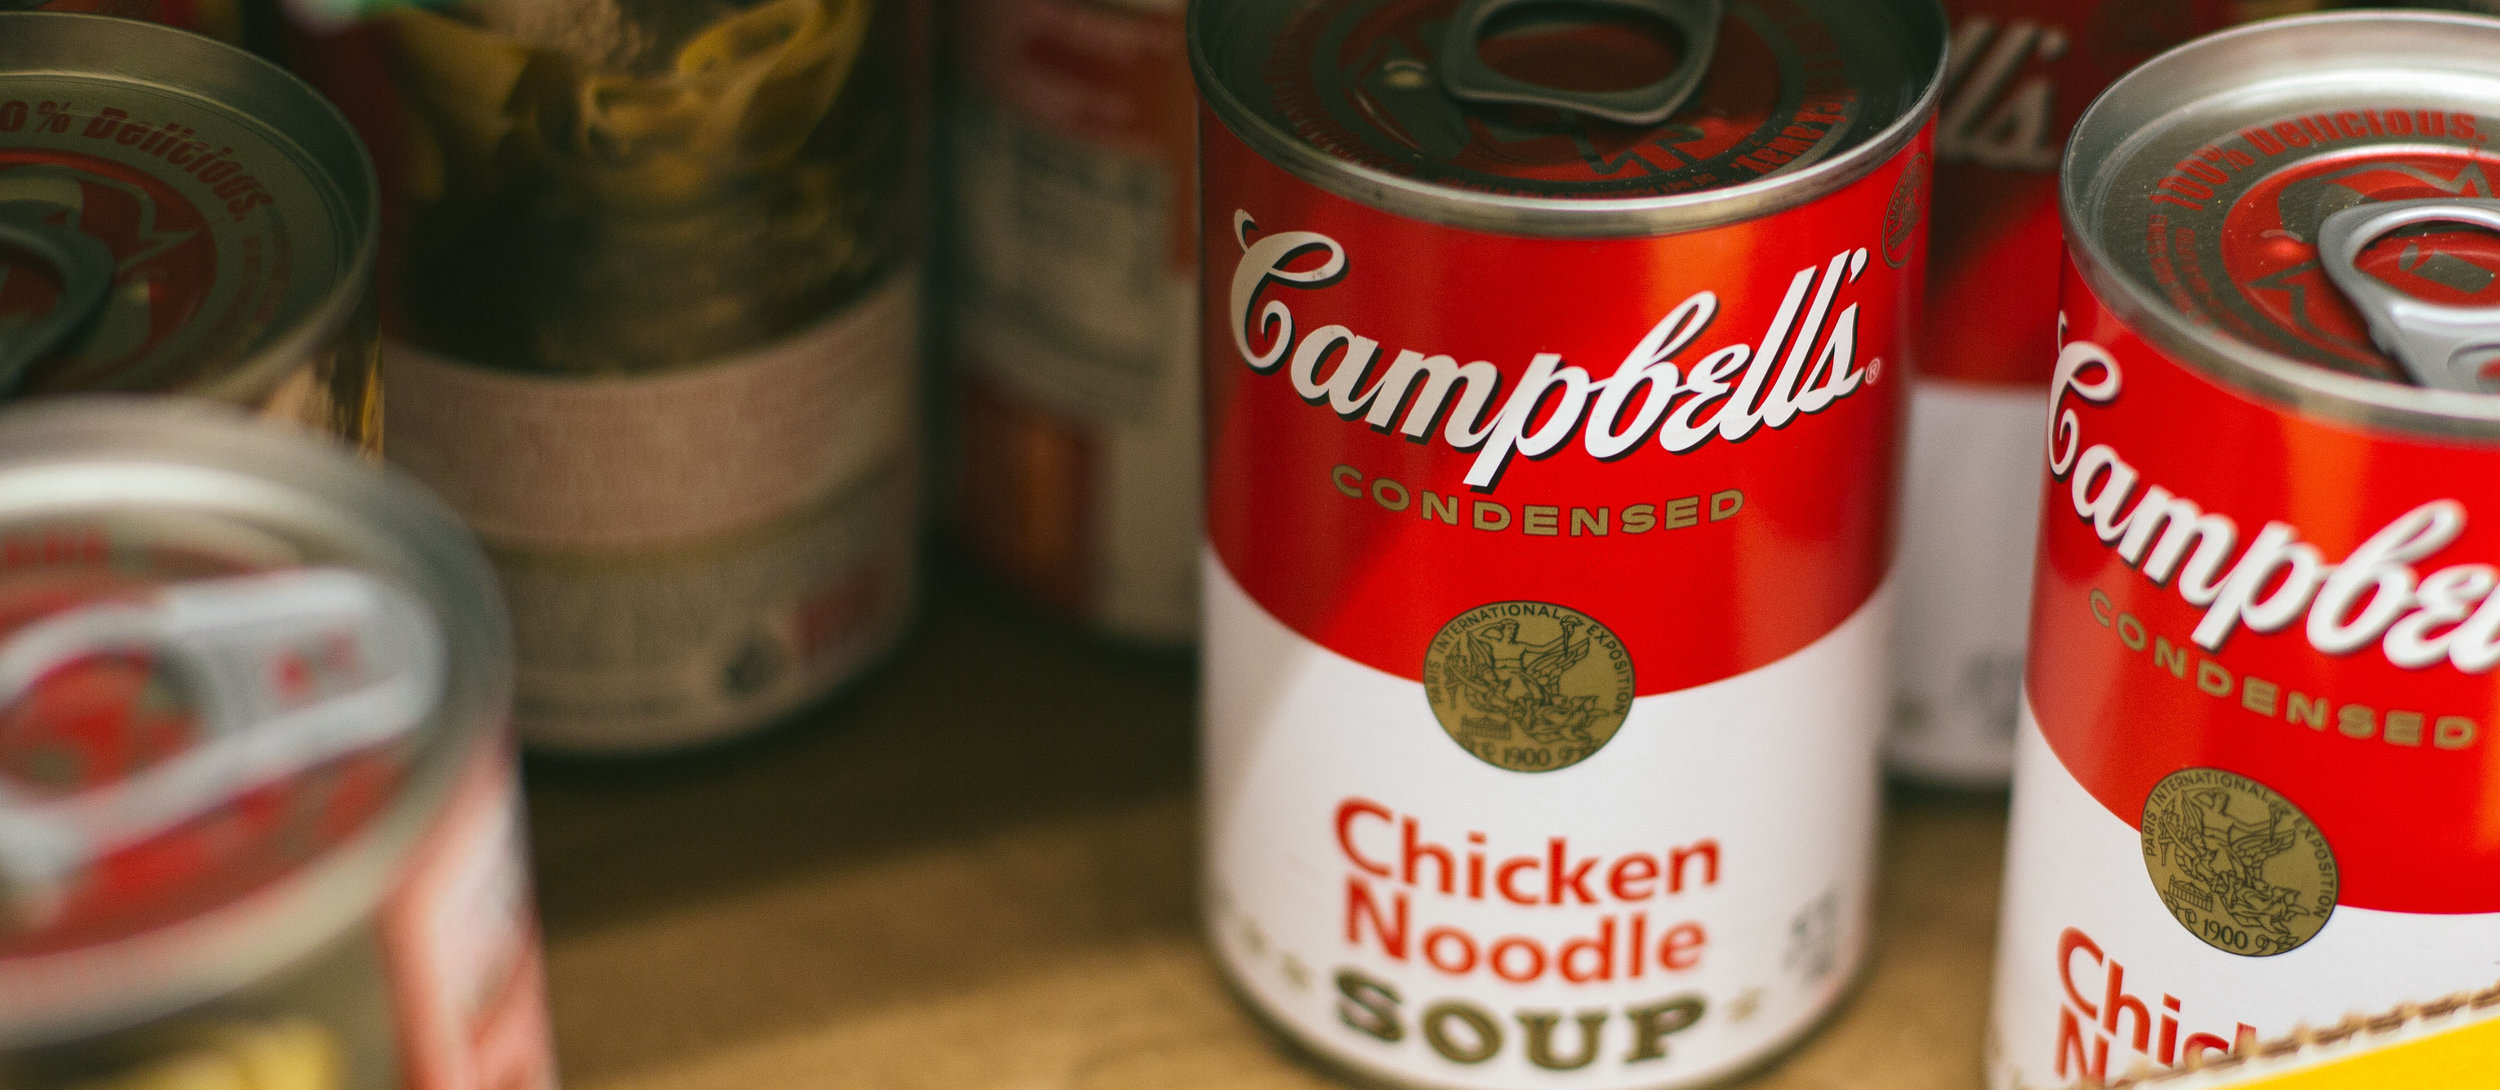 FOOD PANTRY REQUEST -